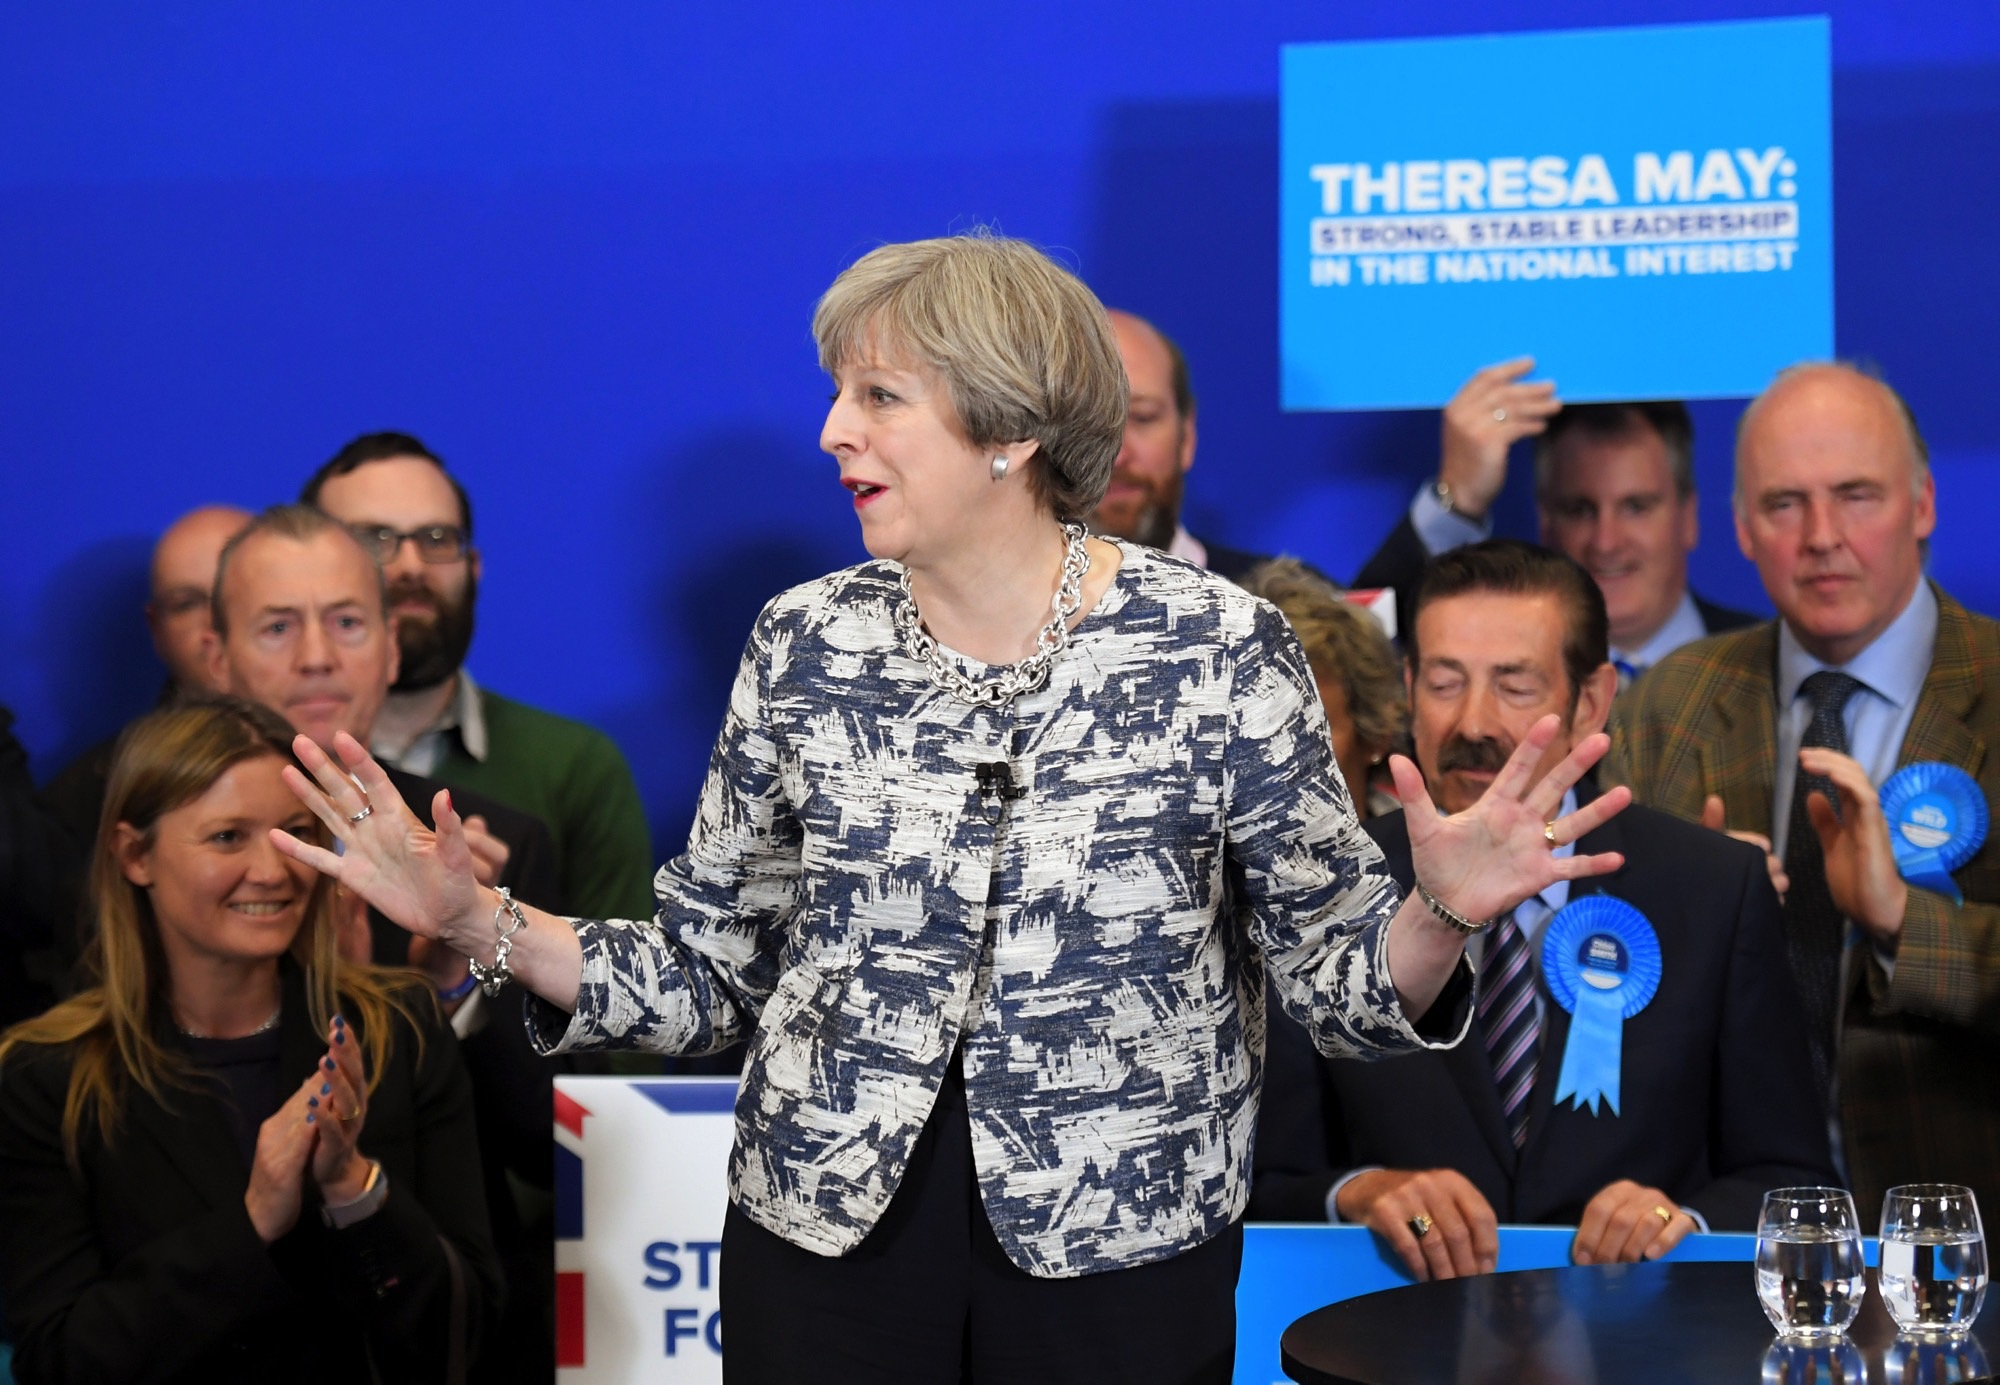 On Eve of Election, May Tried to Put Focus Back on Brexit